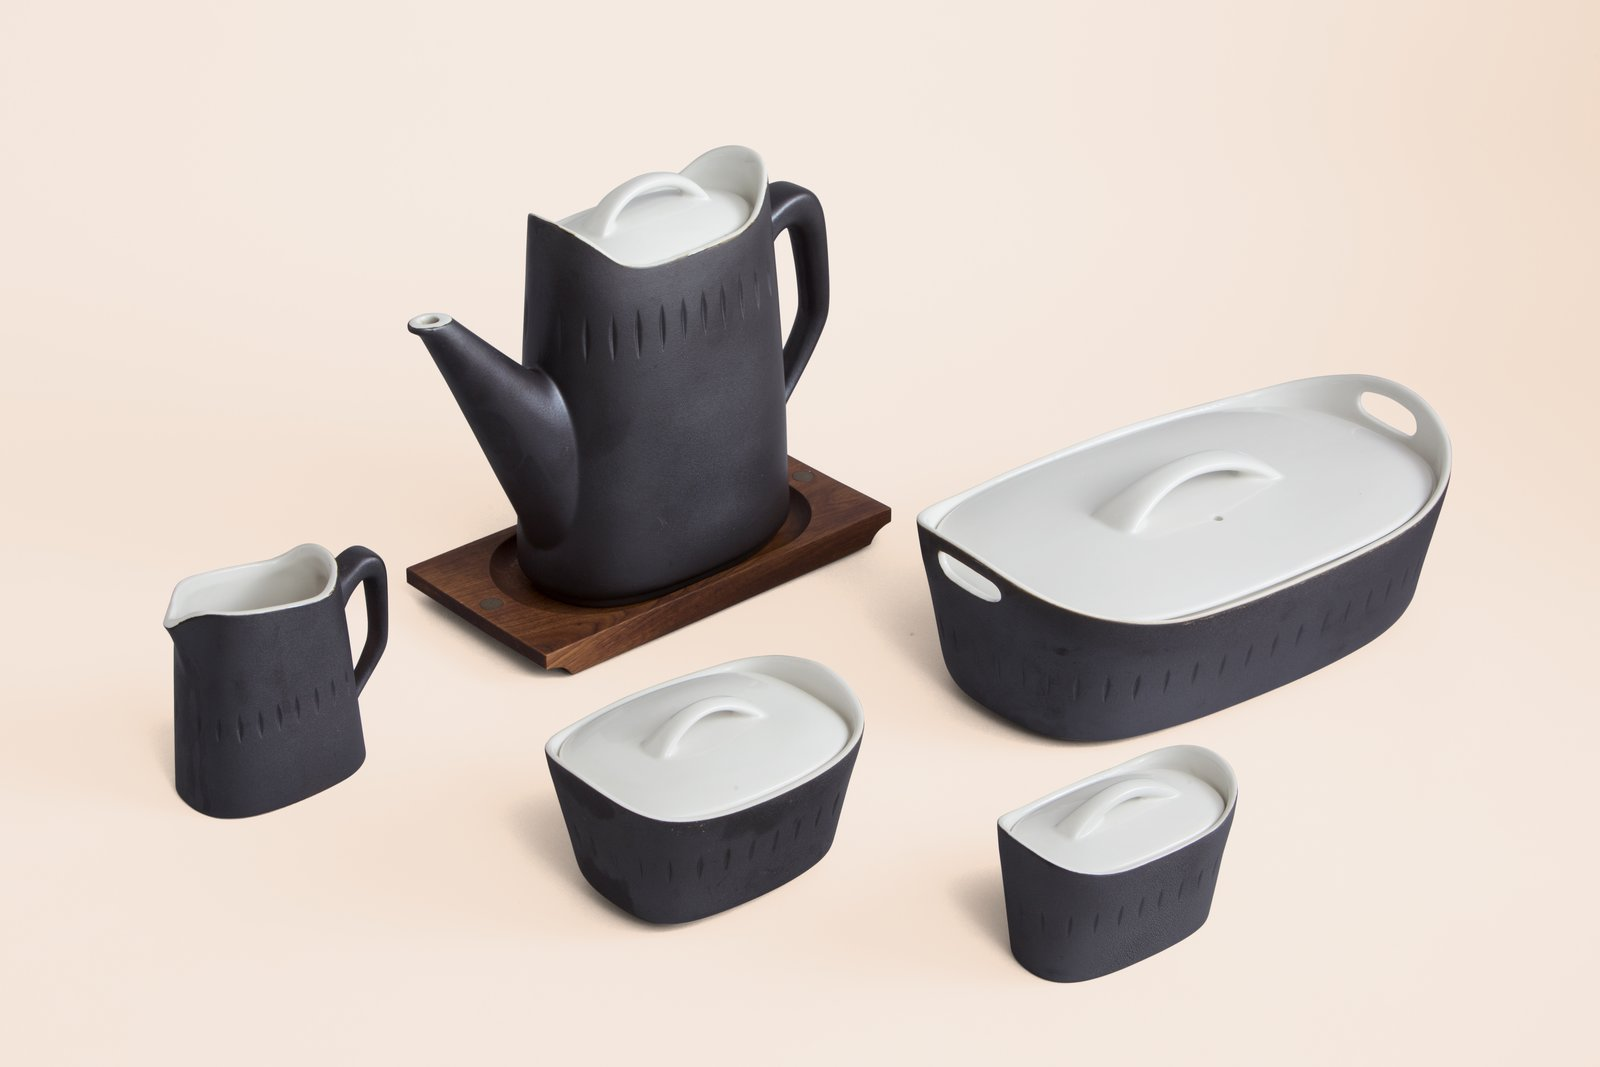 """German designer Ernest Sohn created household products such as lazy Susan trays, candlesticks, and fruit bowls after emigrating to New York in 1936. The """"Esquire"""" coffee pot set and casserole dishes from 1963 feature matte-black exteriors and shiny white interiors and lids. Photo by John Halpern.  Photo 3 of 6 in Jewish Designers' Influence on Midcentury Modernism"""